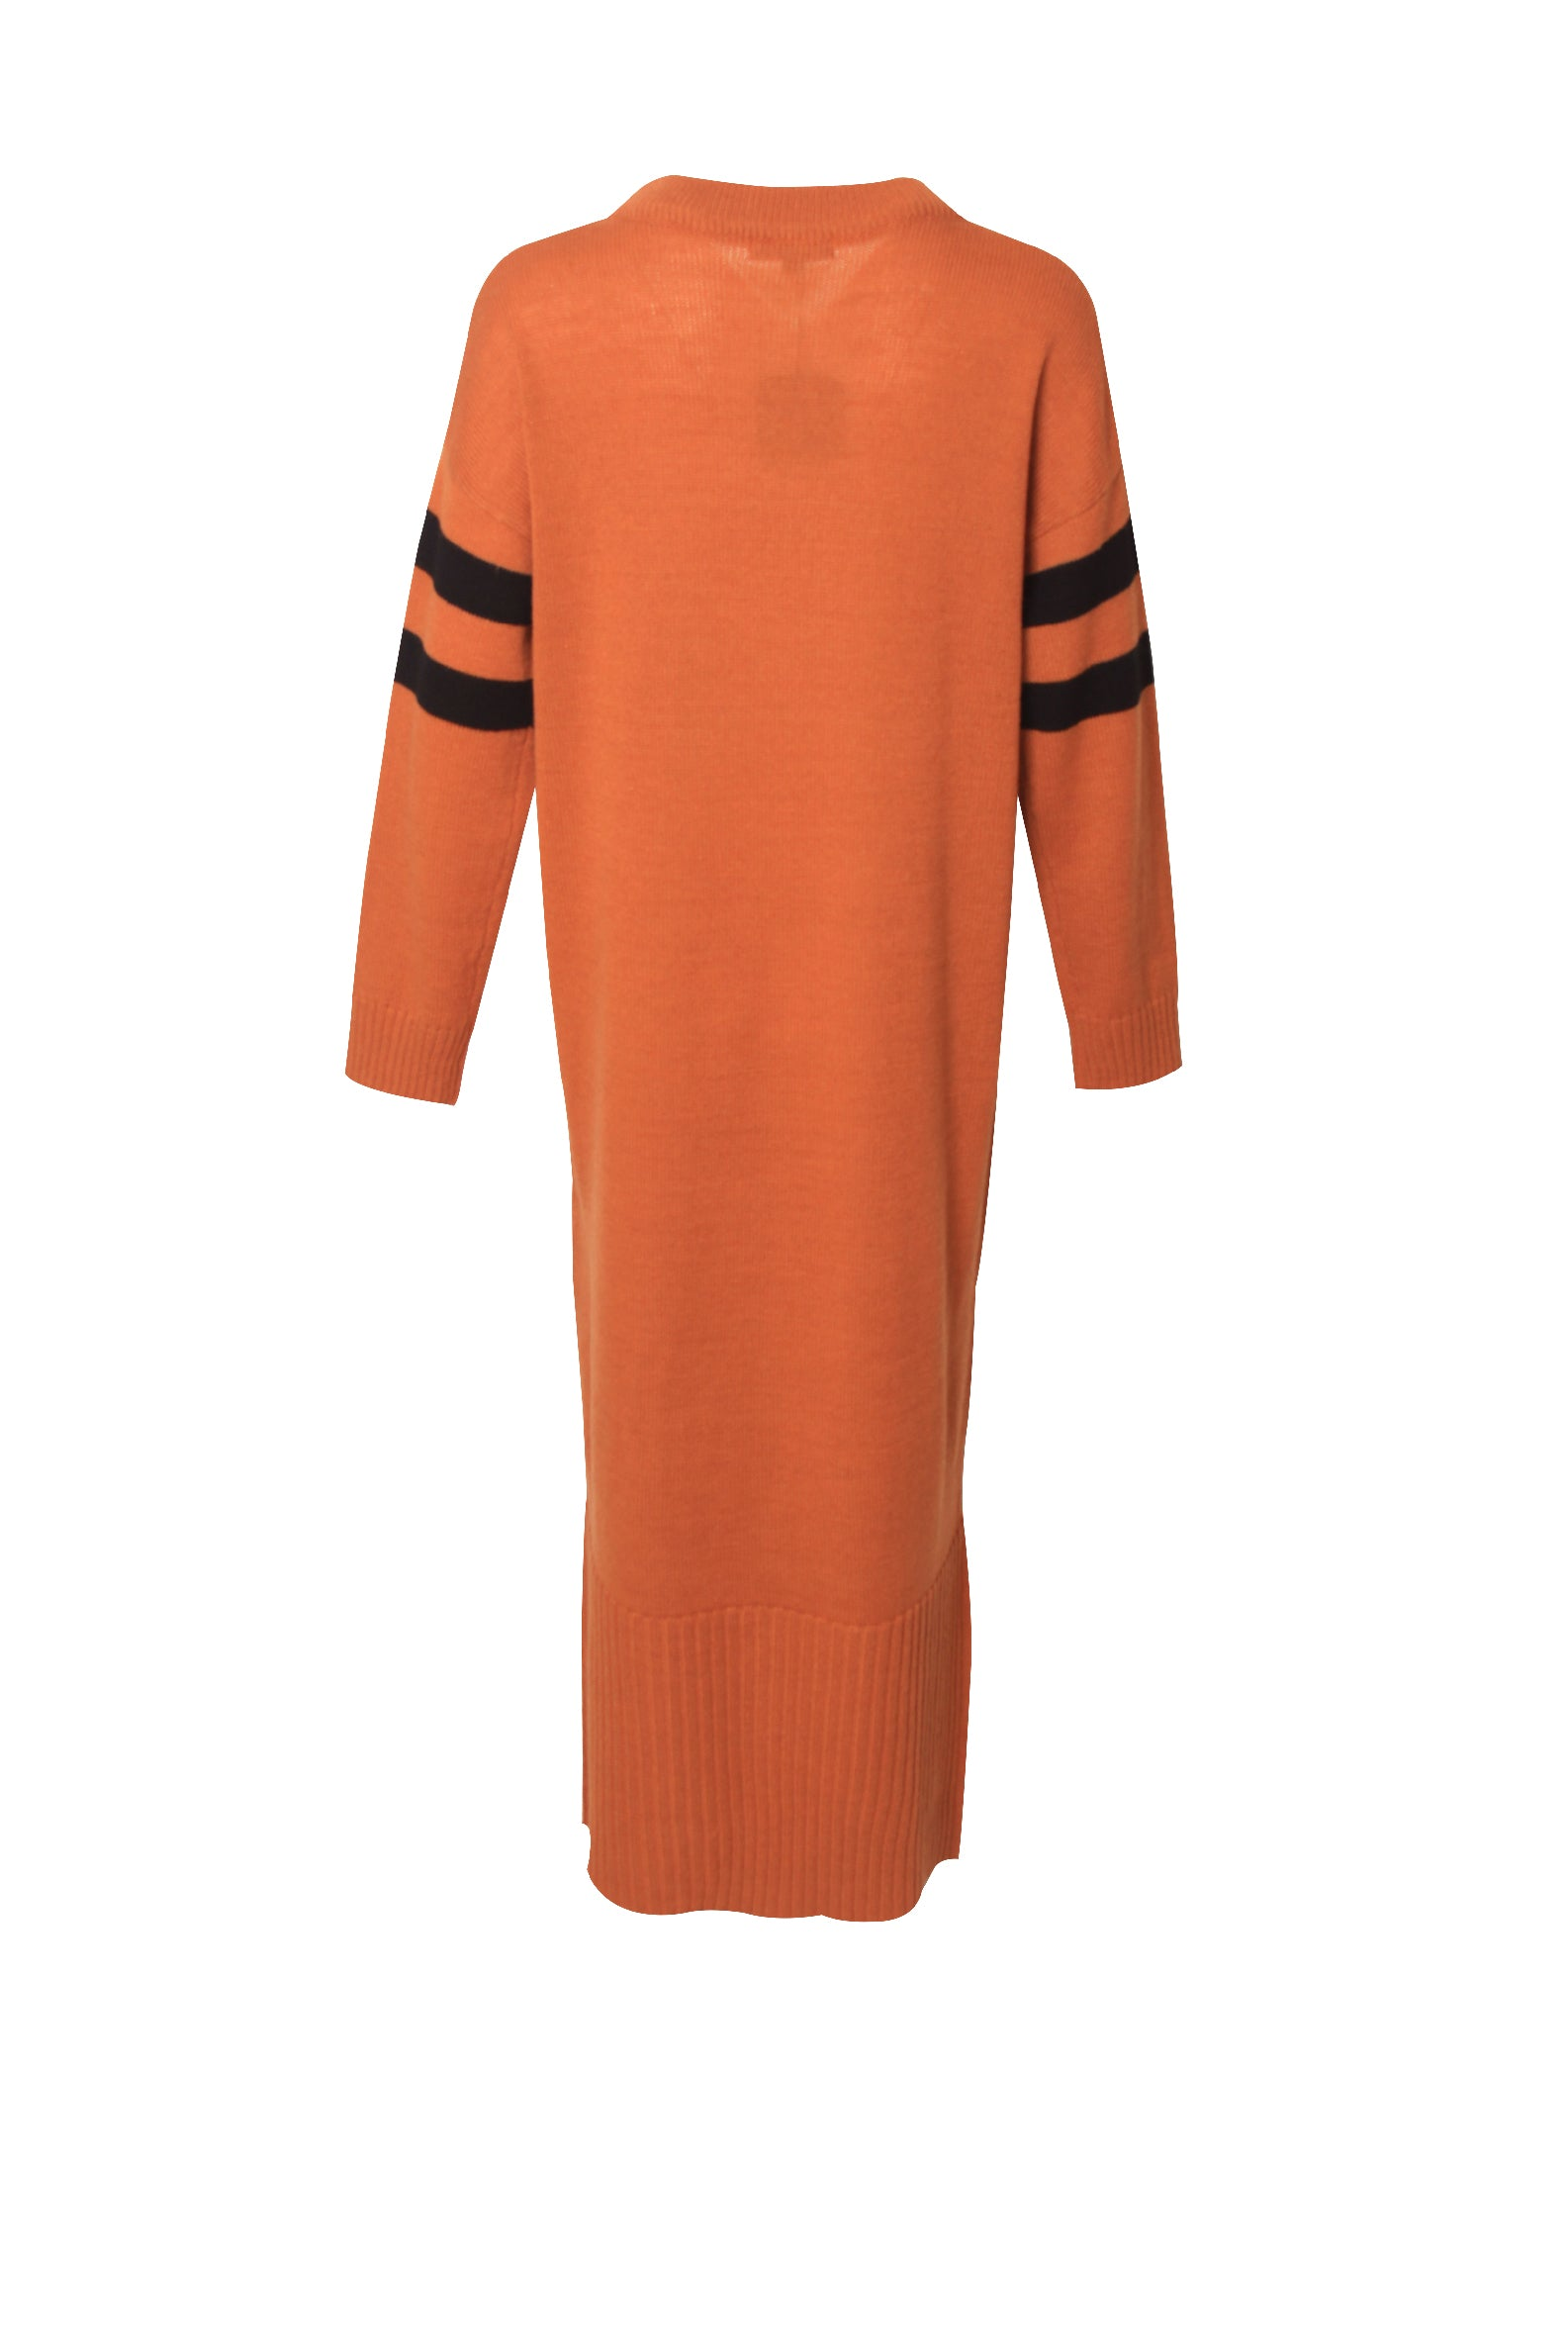 Logo Knitted Dress